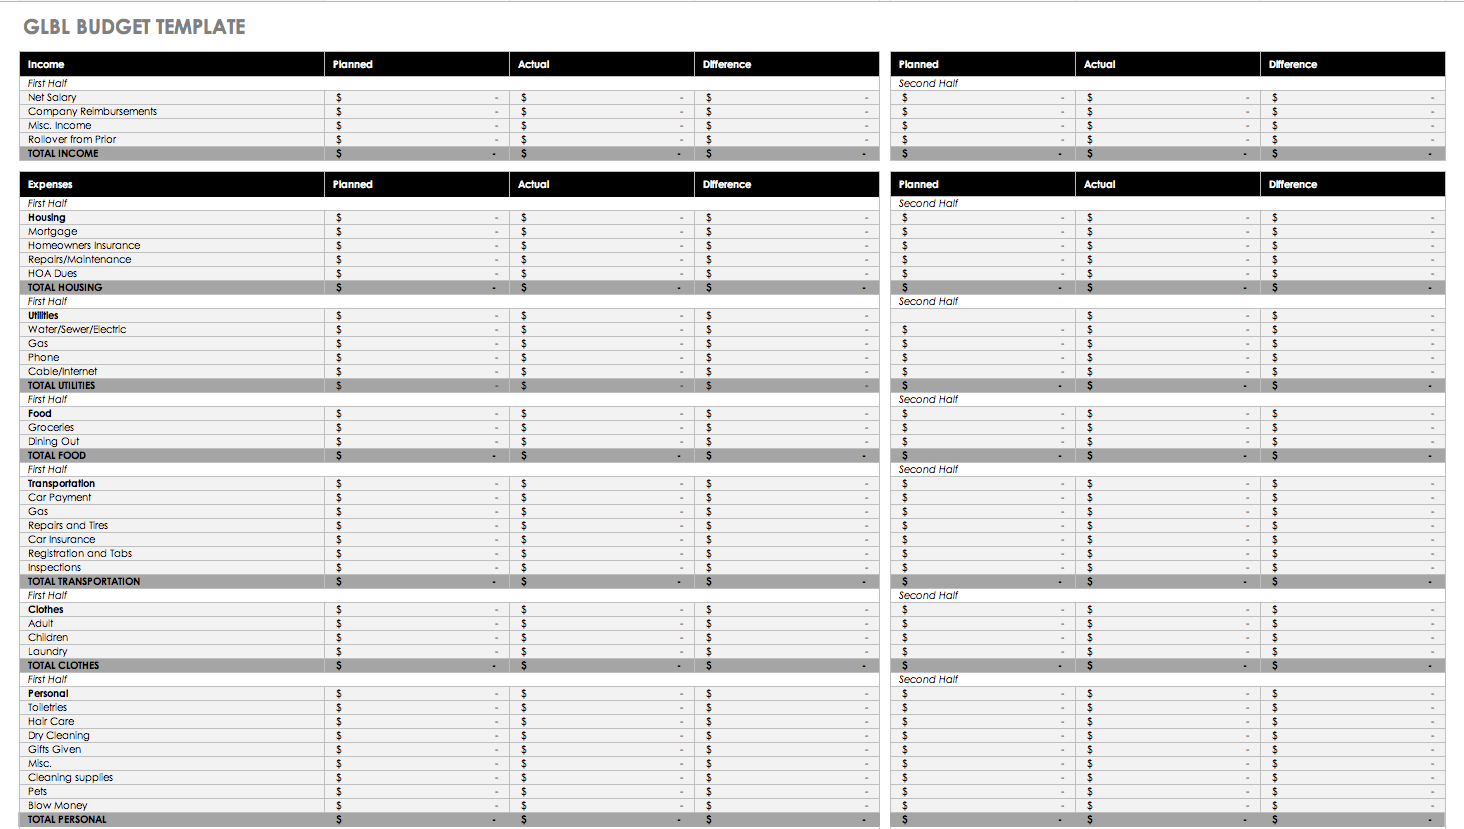 Budget Vs Actual Spreadsheet Template Throughout Free Budget Templates In Excel For Any Use